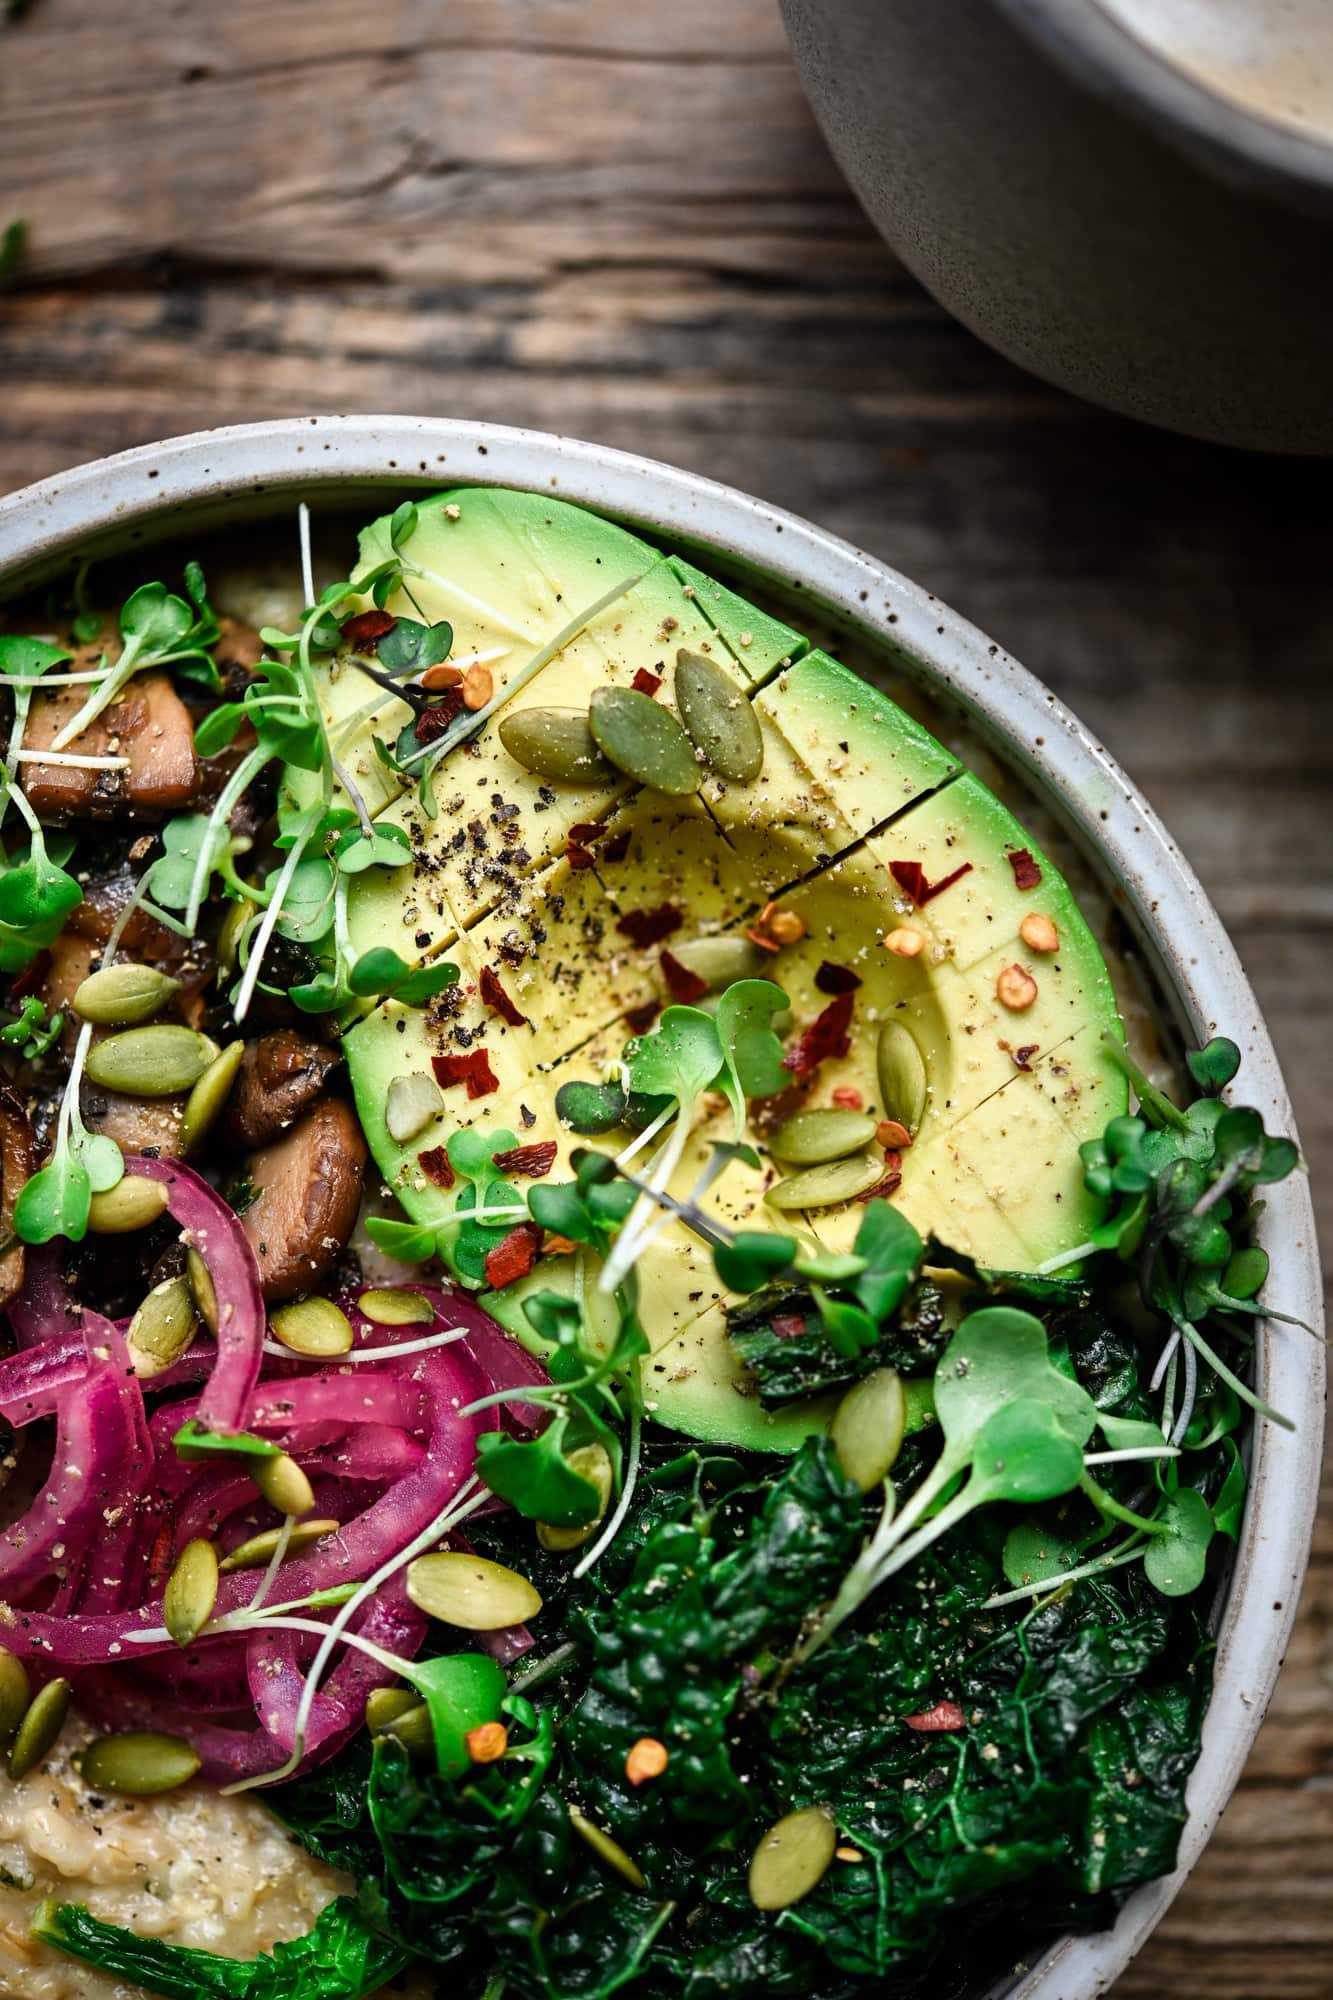 Close up view of vegan avocado in a bowl of savory oatmeal